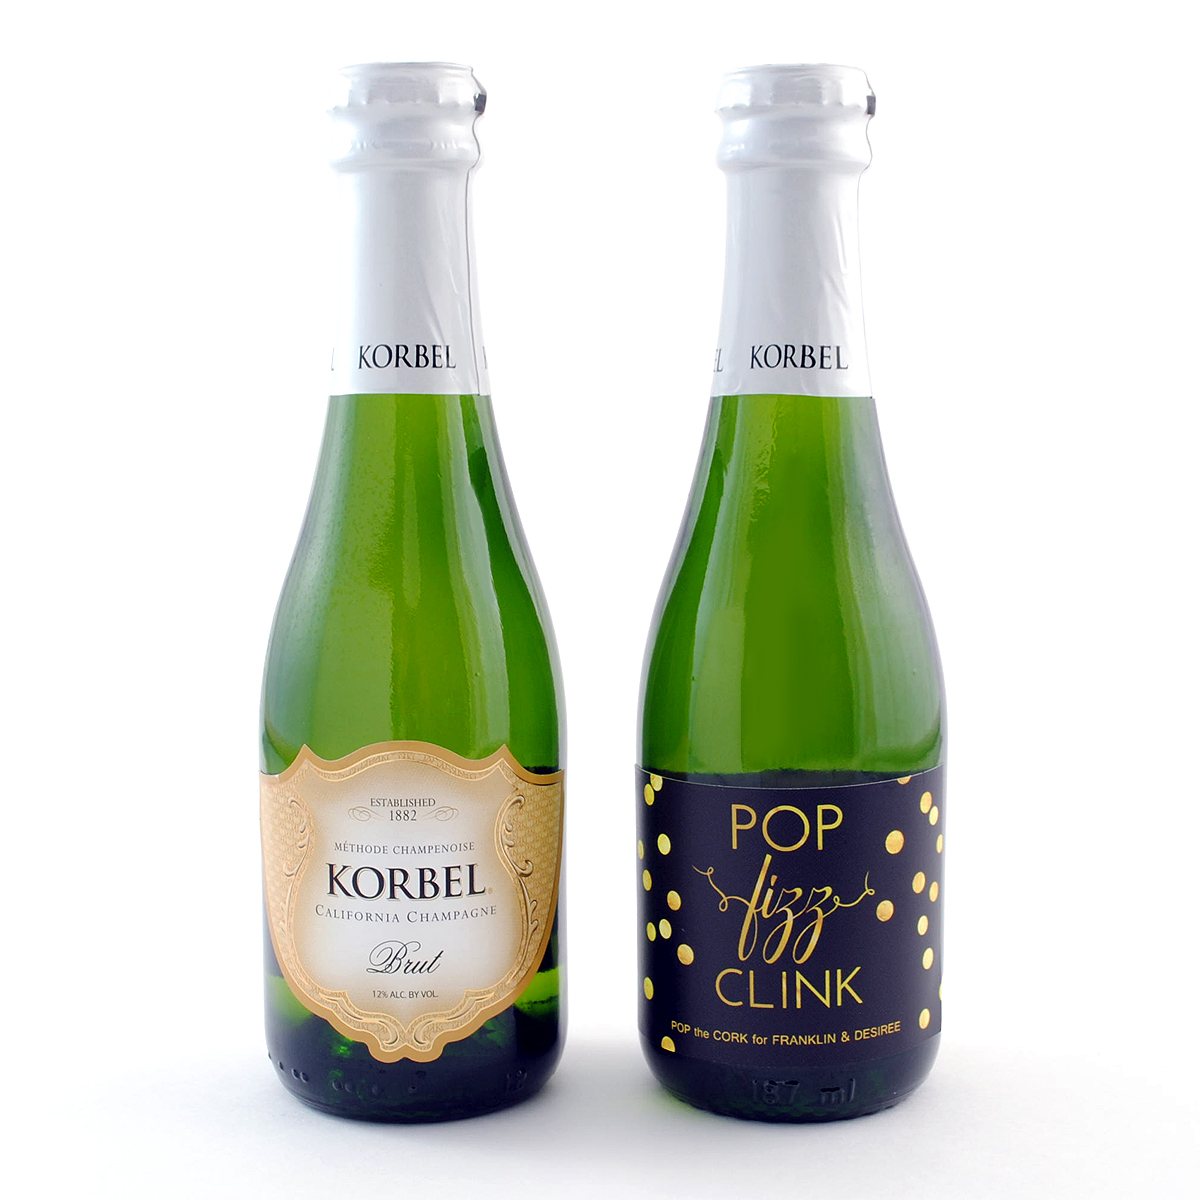 Pop Fizz Clink Mini Champagne Labels For Korbel Bottles